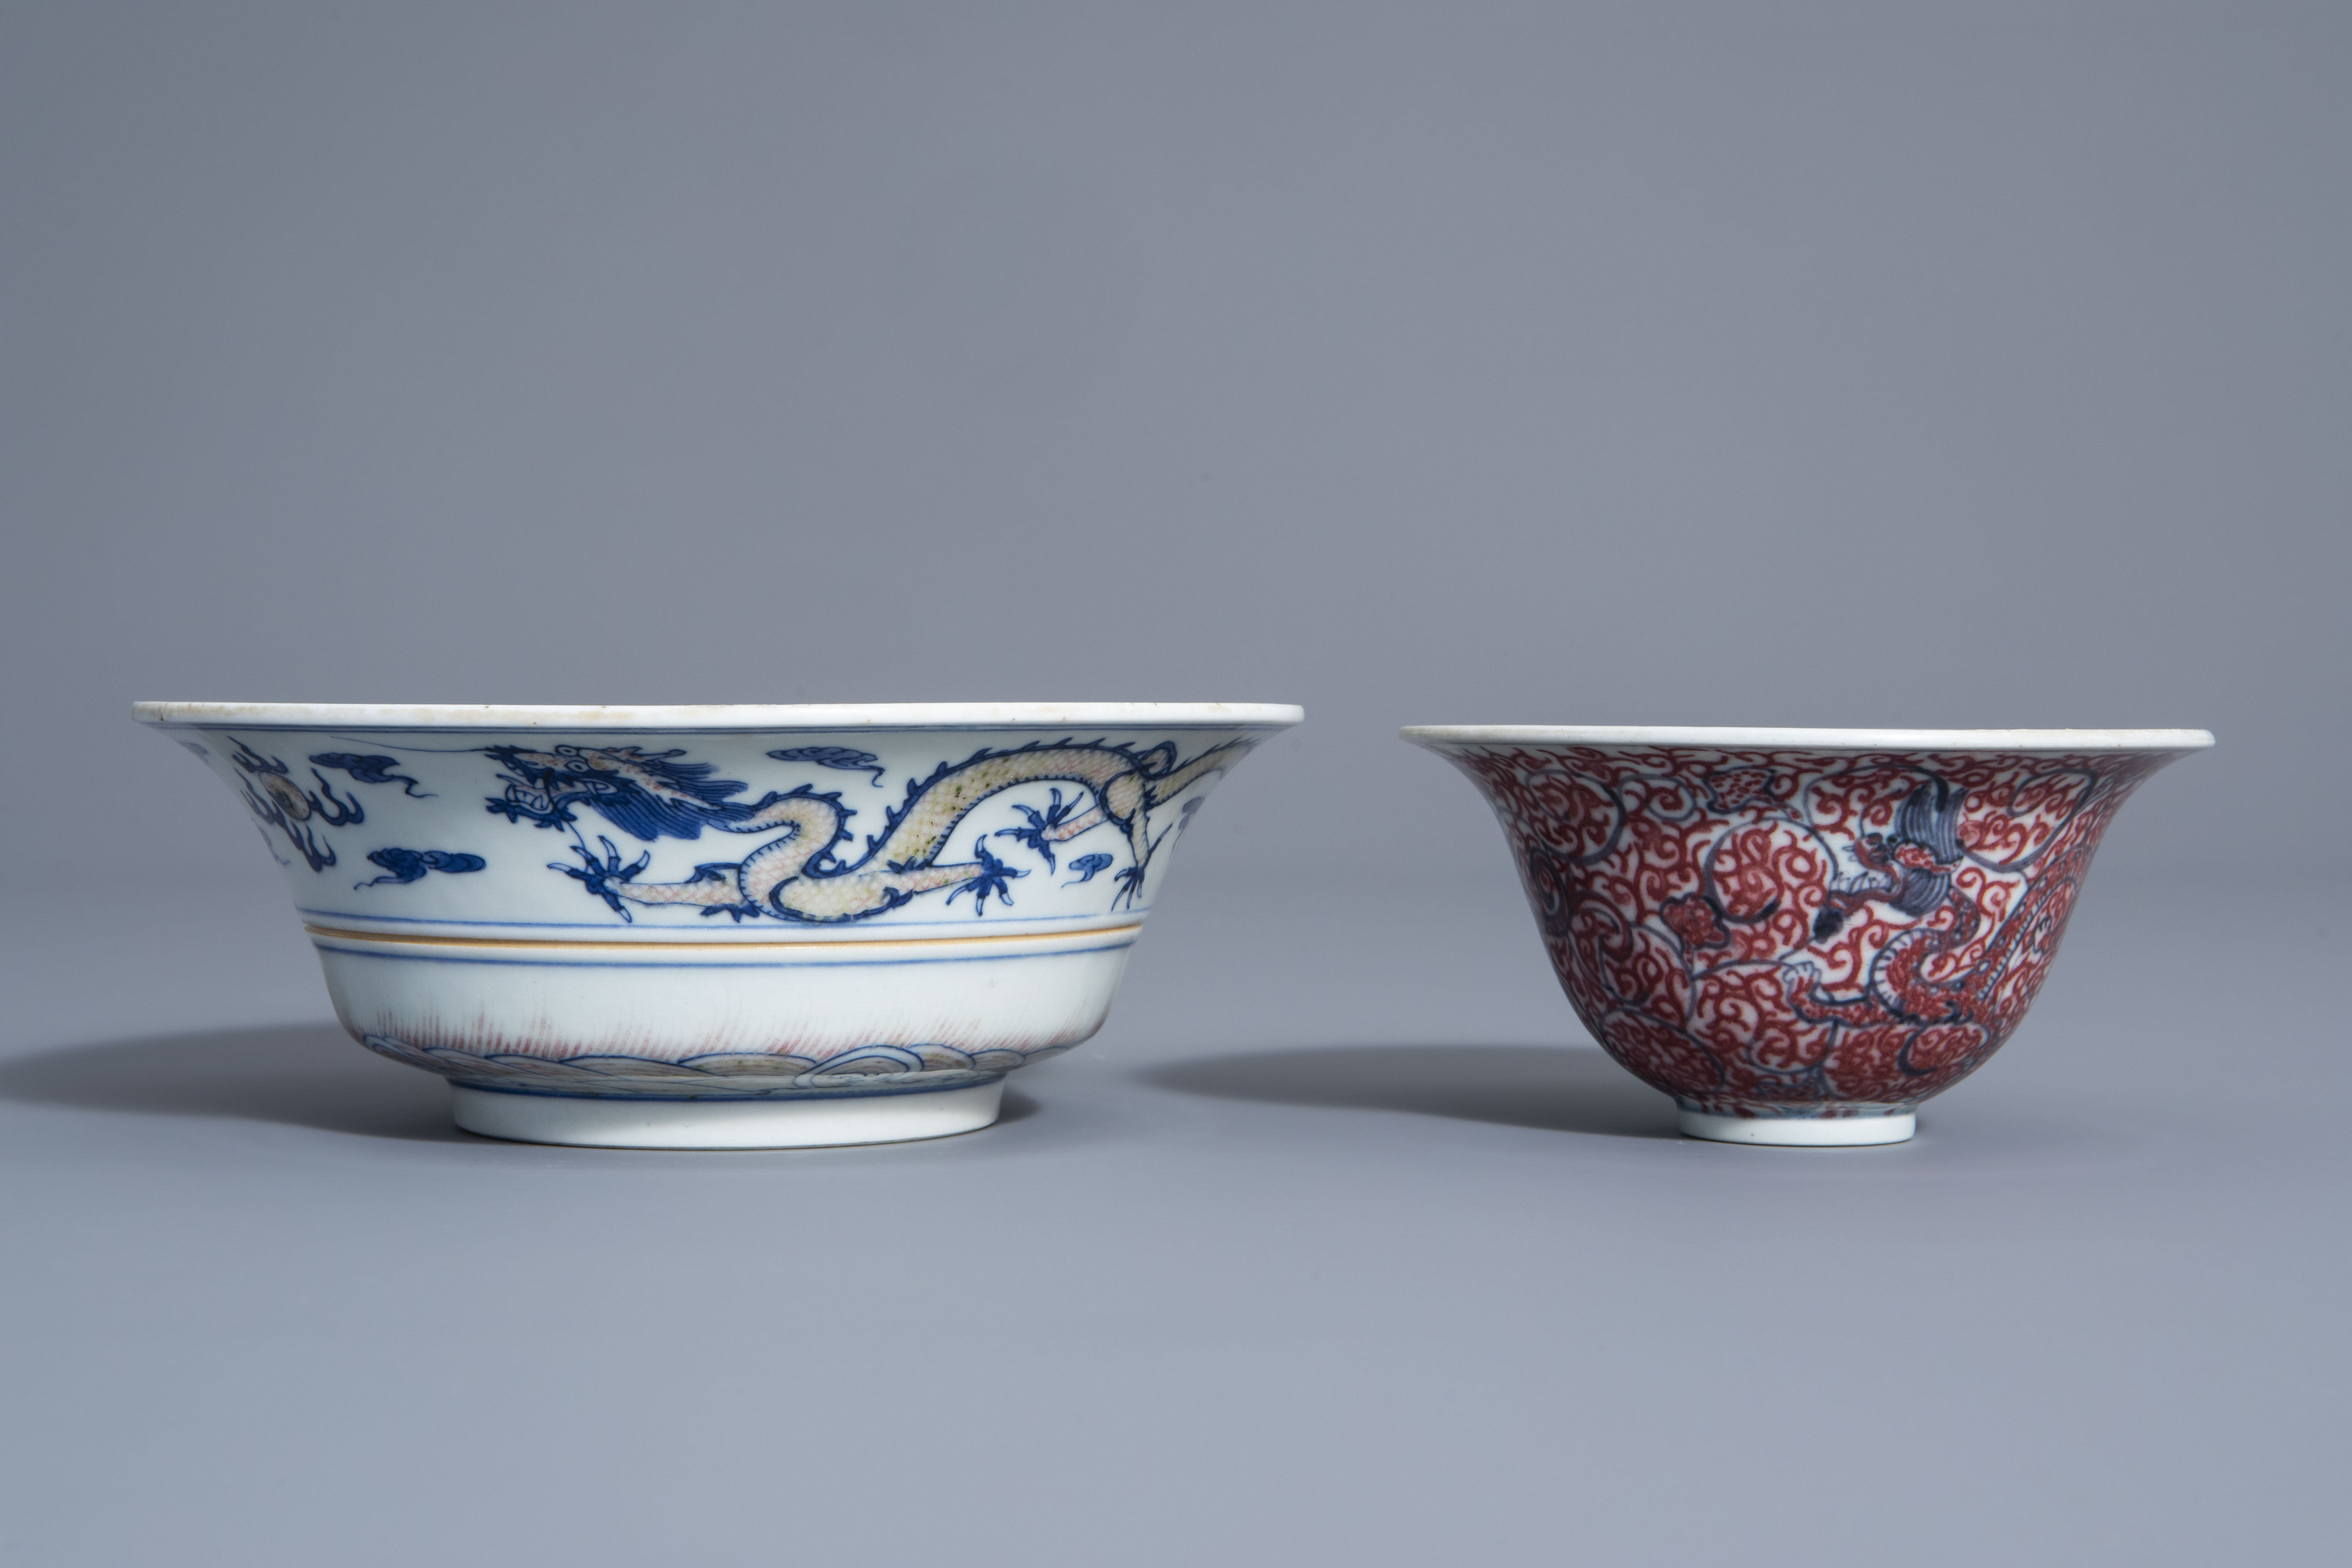 Two Chinese blue, white and copper red bowls, Kangxi mark, 19th/20th C. - Image 2 of 7